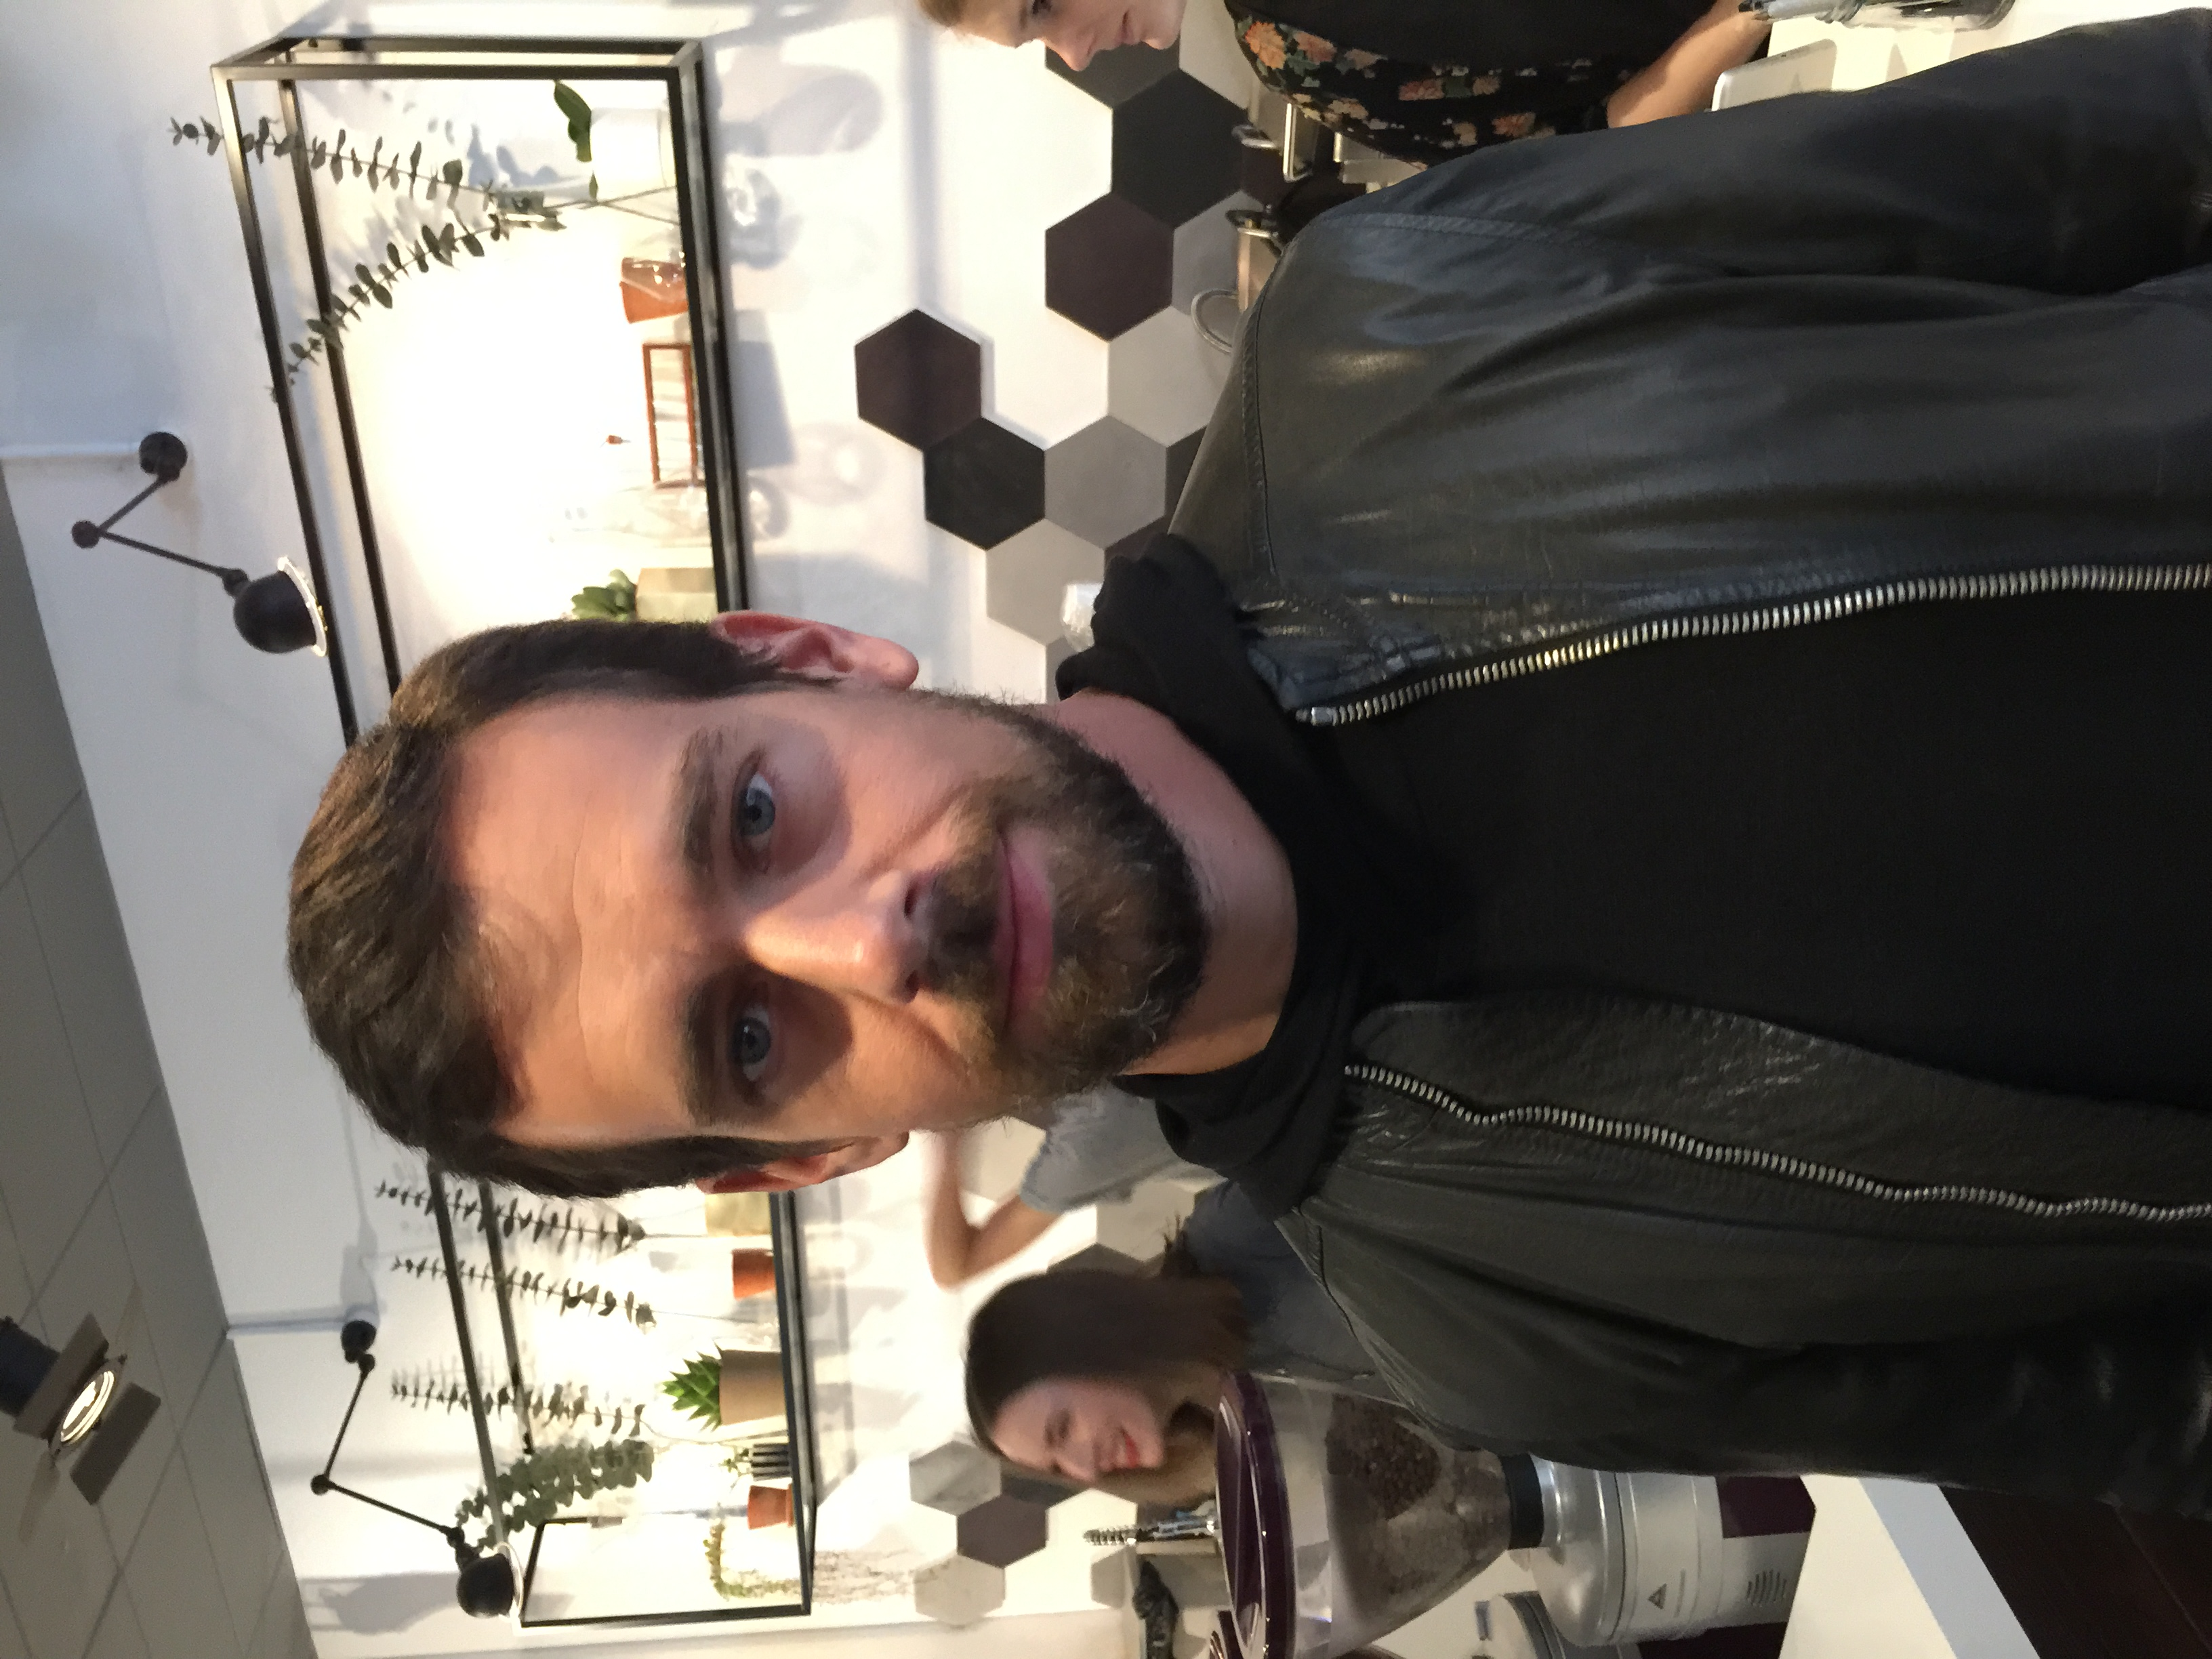 The 41-year old son of father Tim Dorsey and mother Marcia Dorsey Jack Dorsey in 2018 photo. Jack Dorsey earned a  million dollar salary - leaving the net worth at 2100 million in 2018